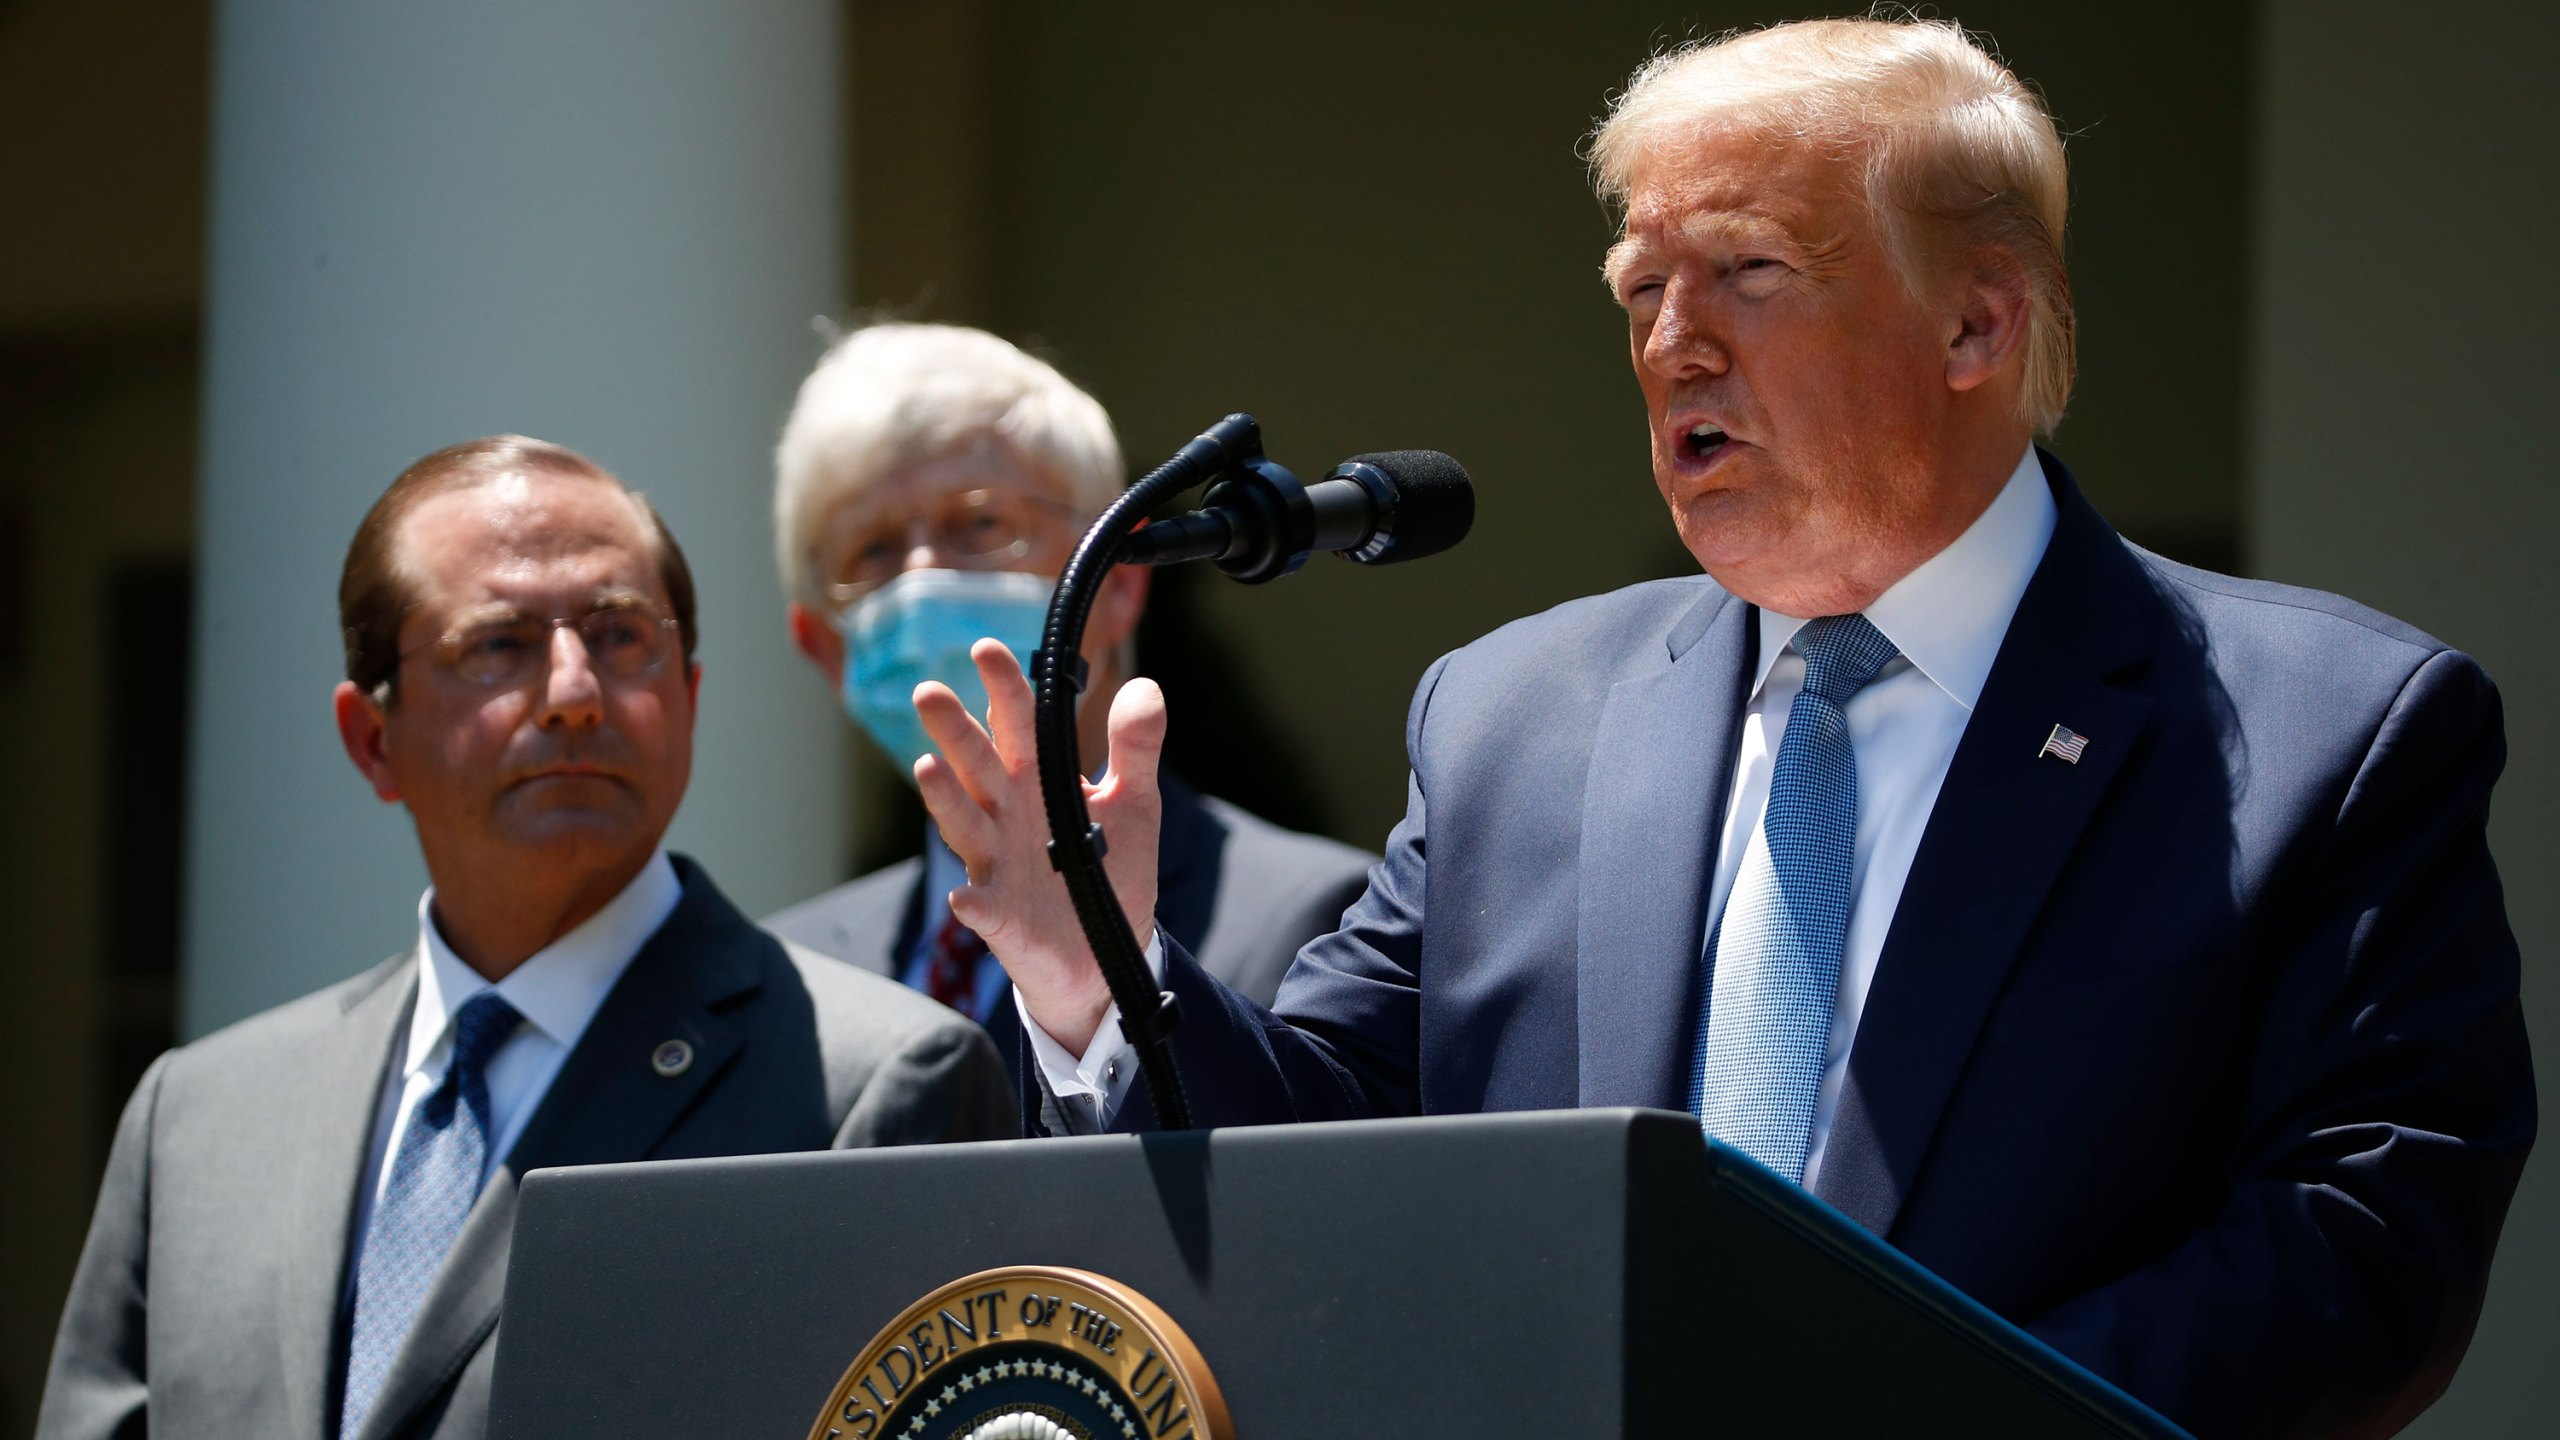 President Donald Trump speaks about the coronavirus in the Rose Garden of the White House, Friday, May 15, 2020, in Washington. (AP Photo/Alex Brandon via CNN)